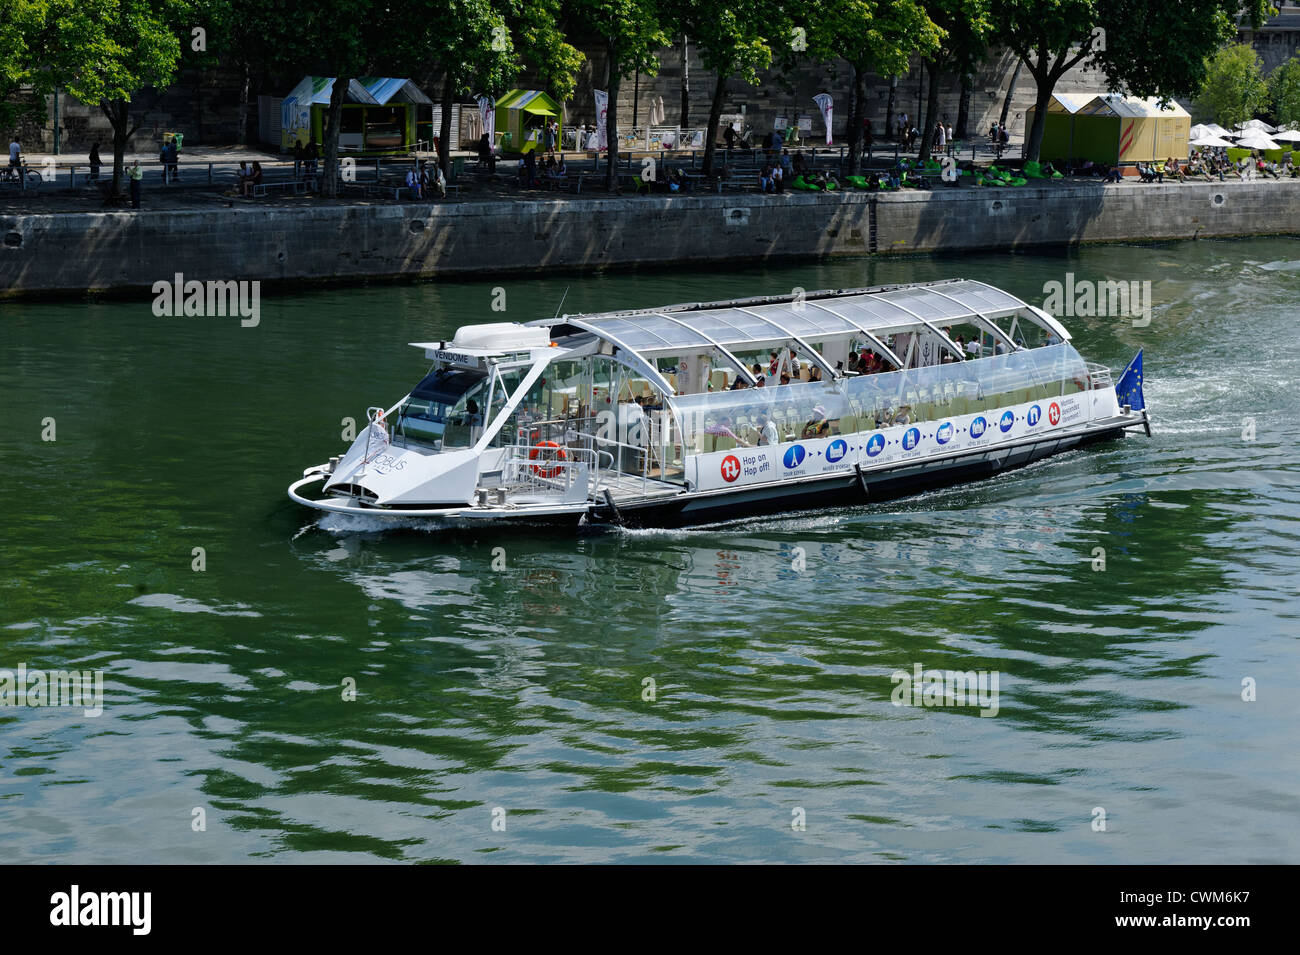 Tourist sight seeing boat cruising on the River Seine in PAris, France - Stock Image